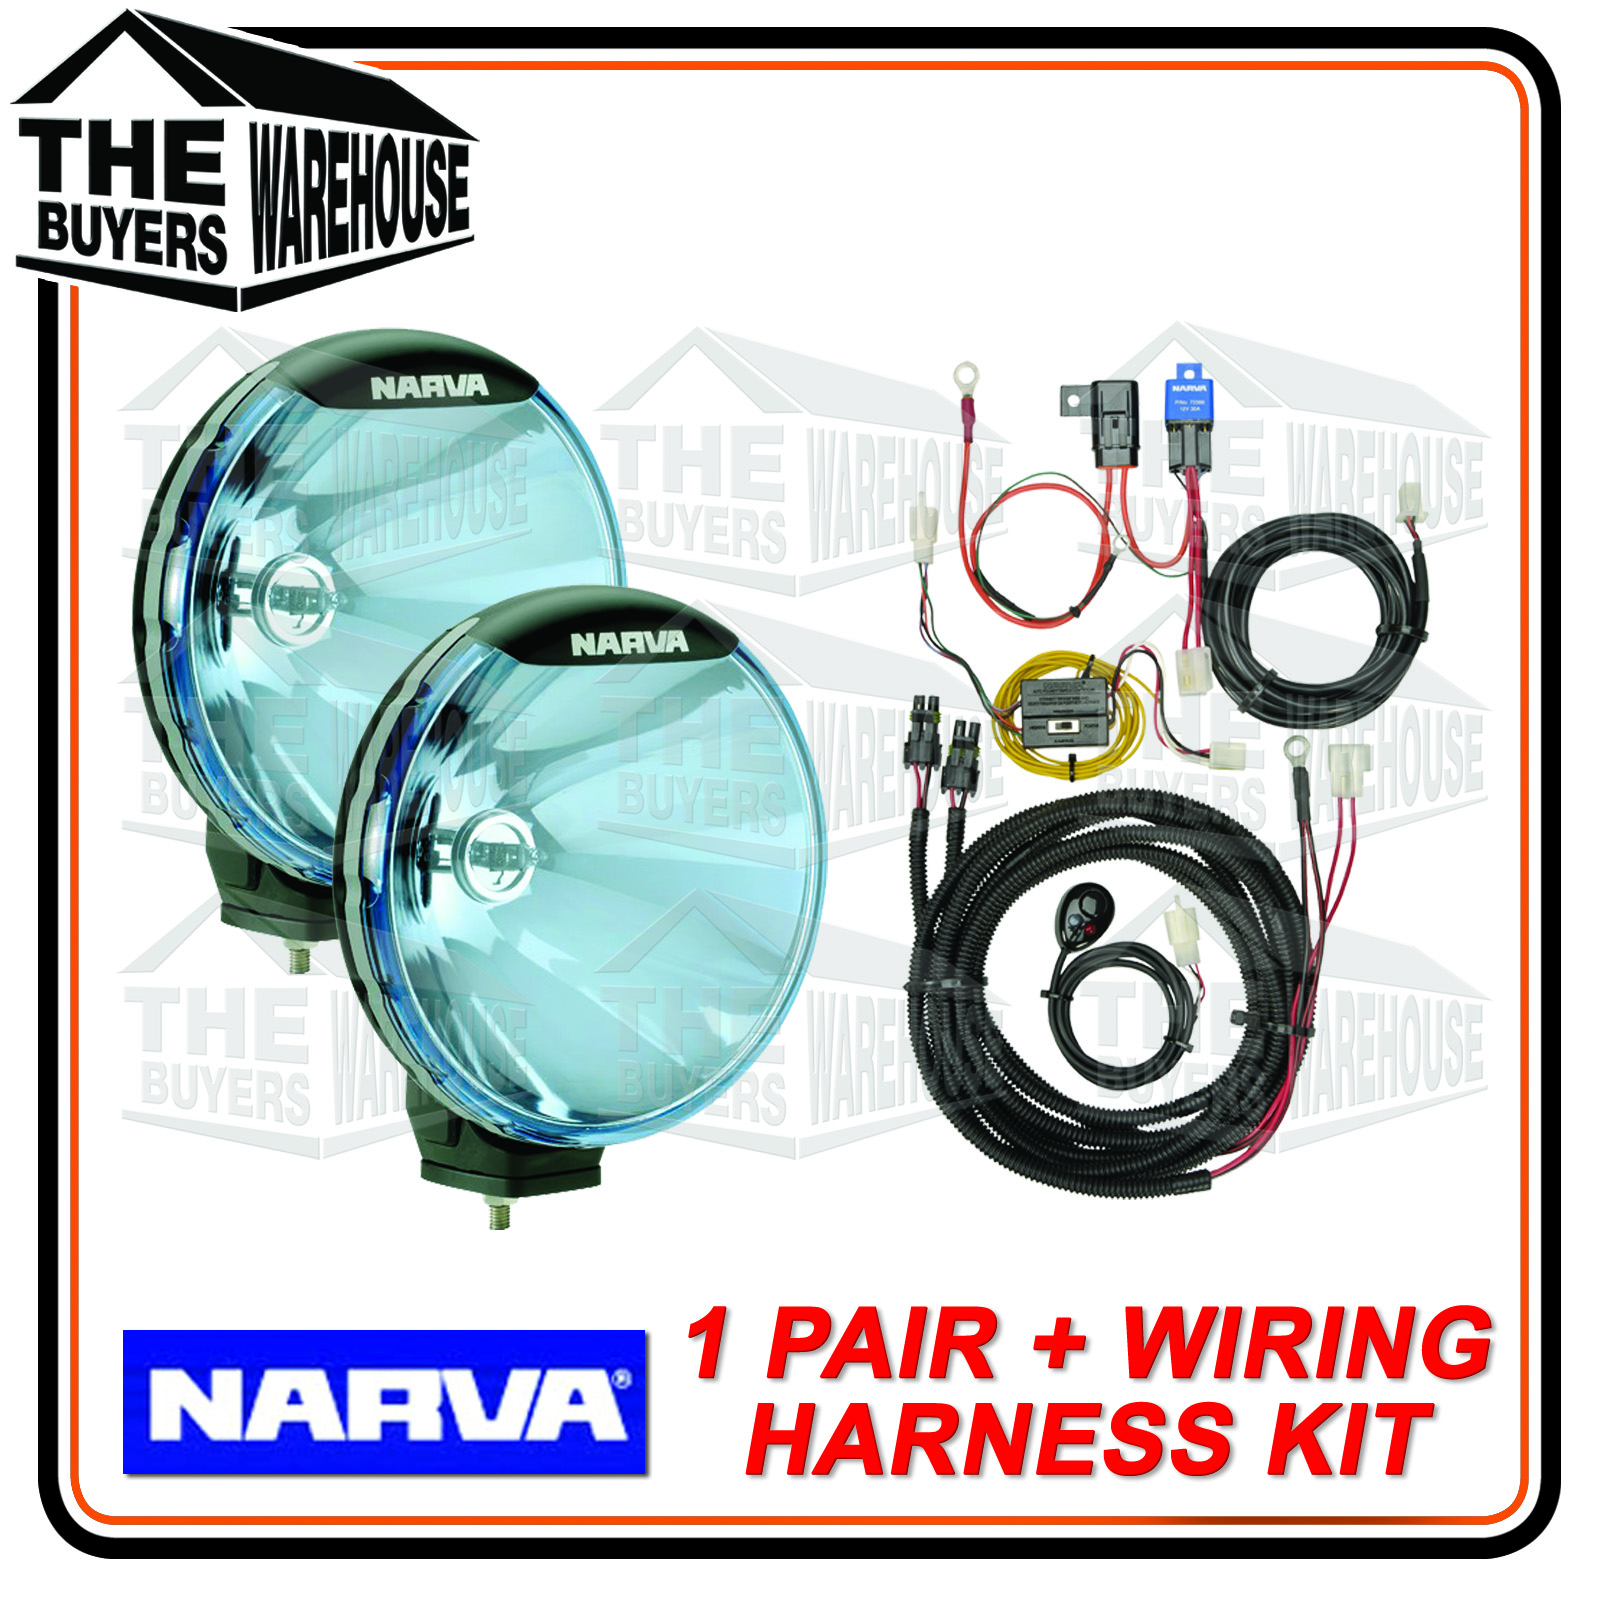 Pleasing Wiring Diagram As Well Ultima Wiring Harness Plete Motorcycle Wiring Wiring Cloud Oideiuggs Outletorg